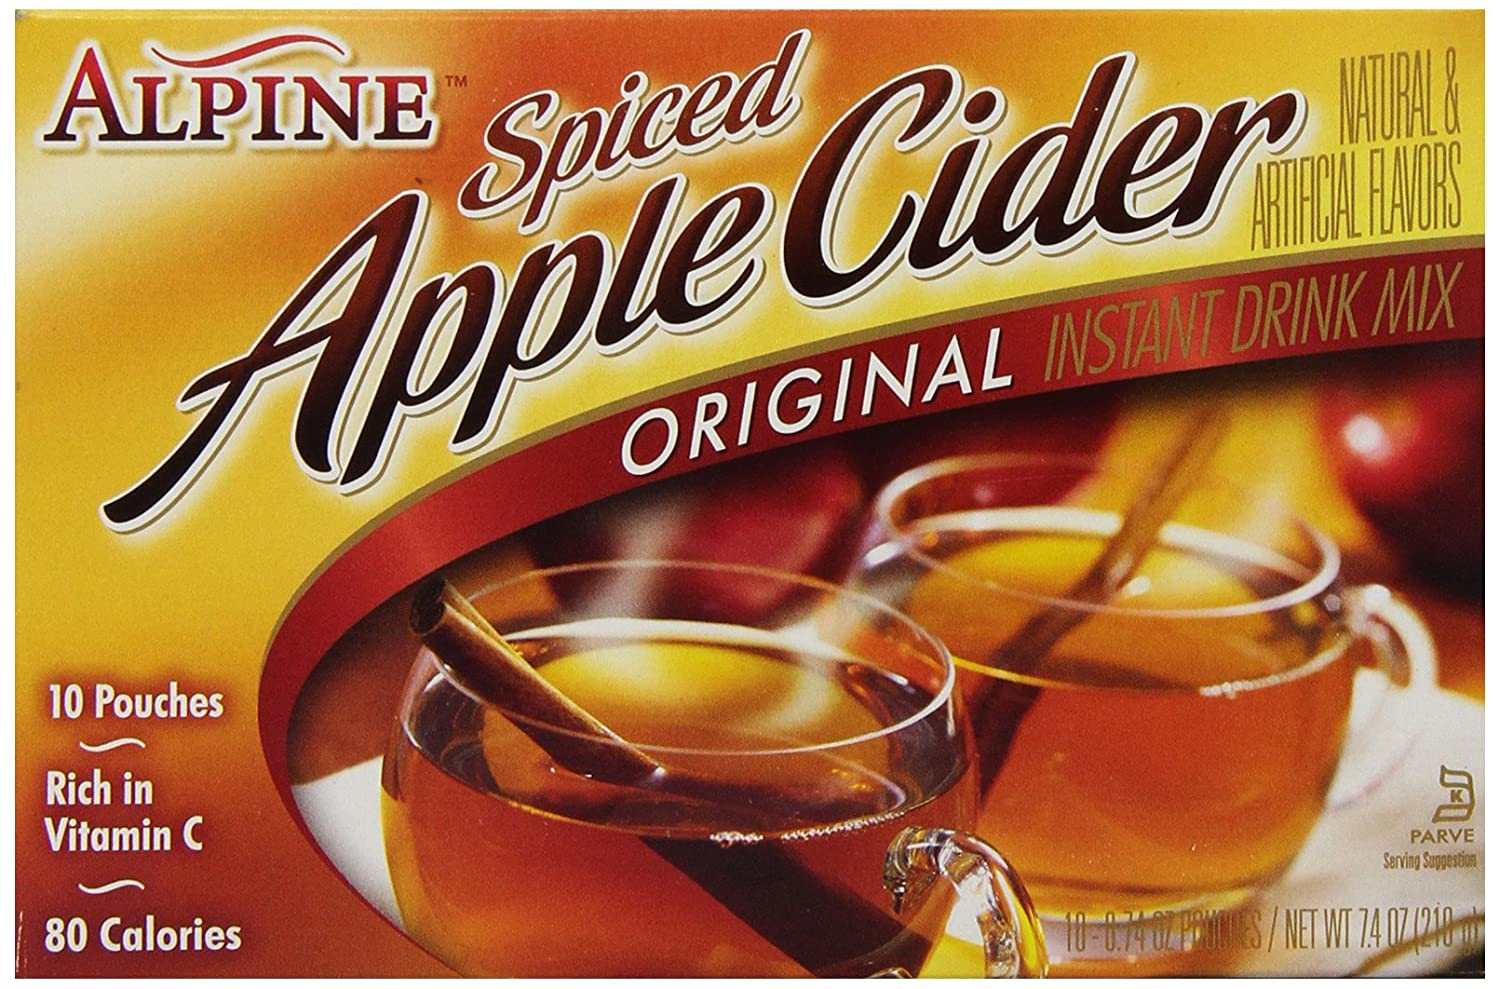 Alpine Spiced Cider Spiced Cider Apple Flavor Drink Mix, 10 ct